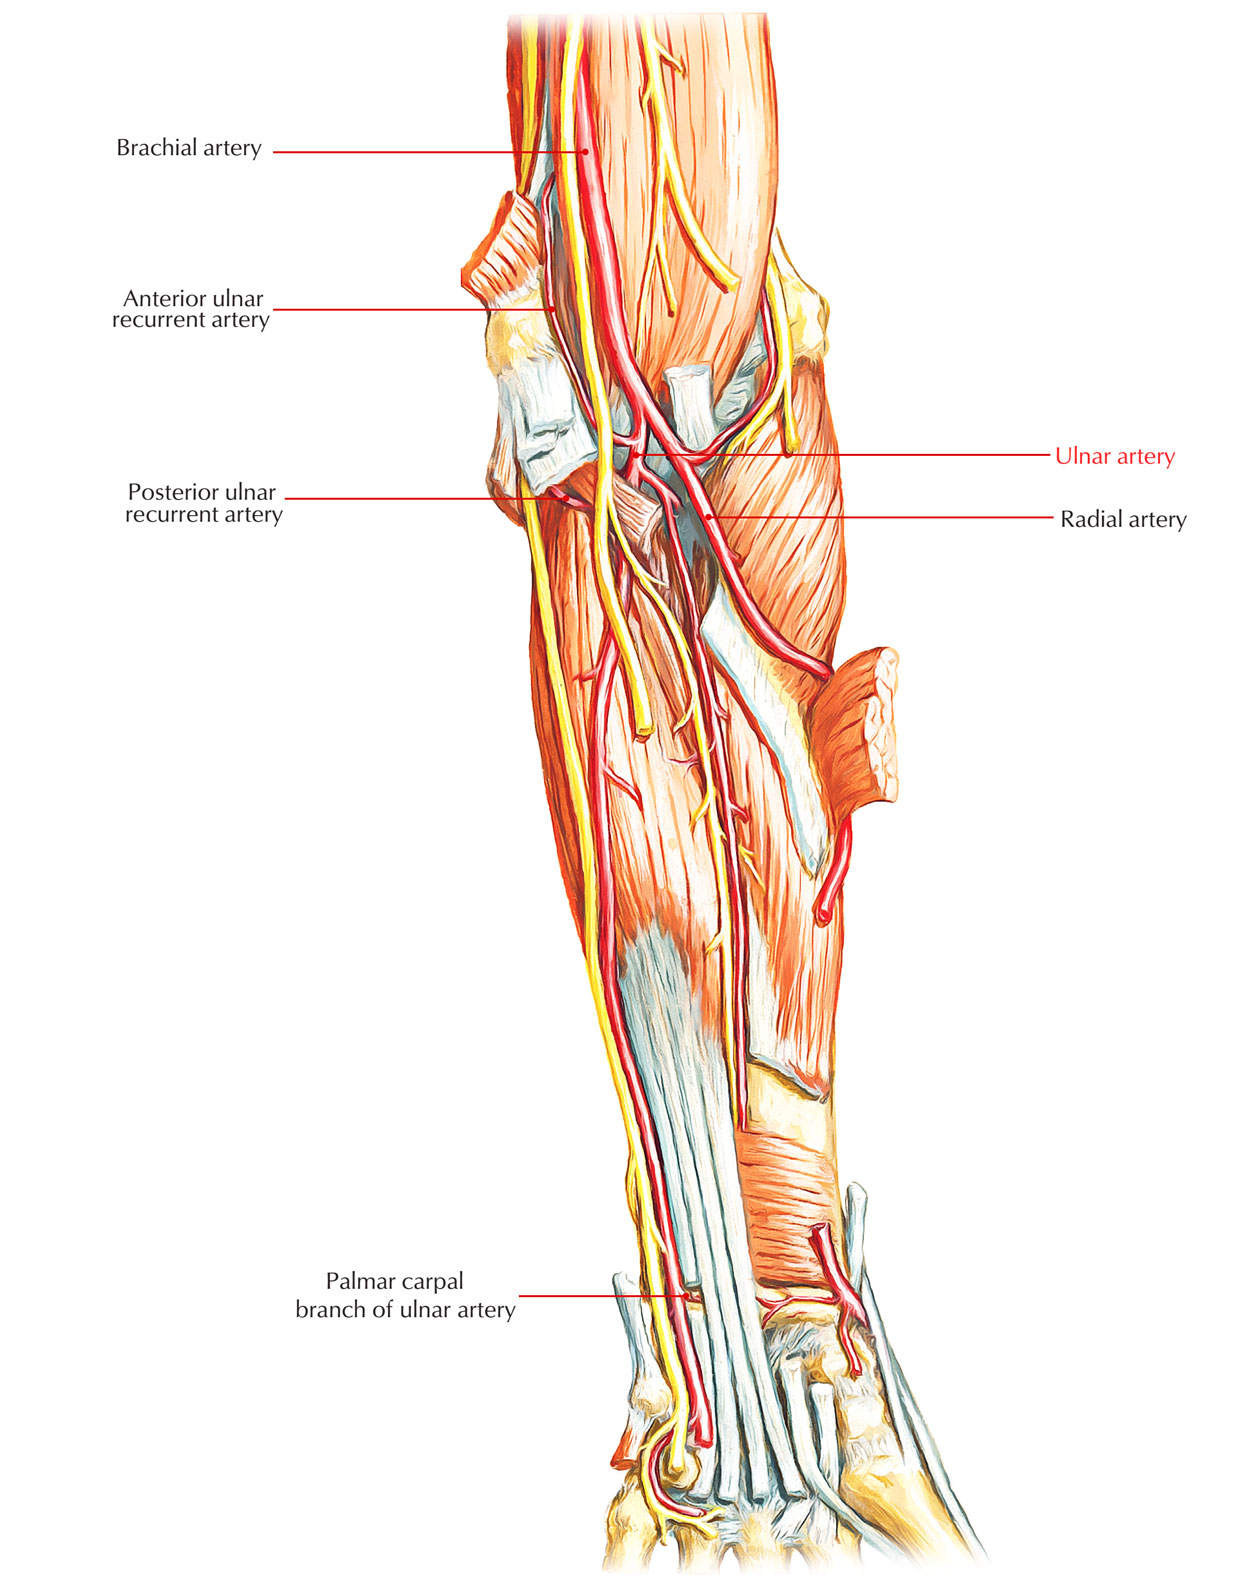 Arteries of Upper Limb: Ulnar Artery